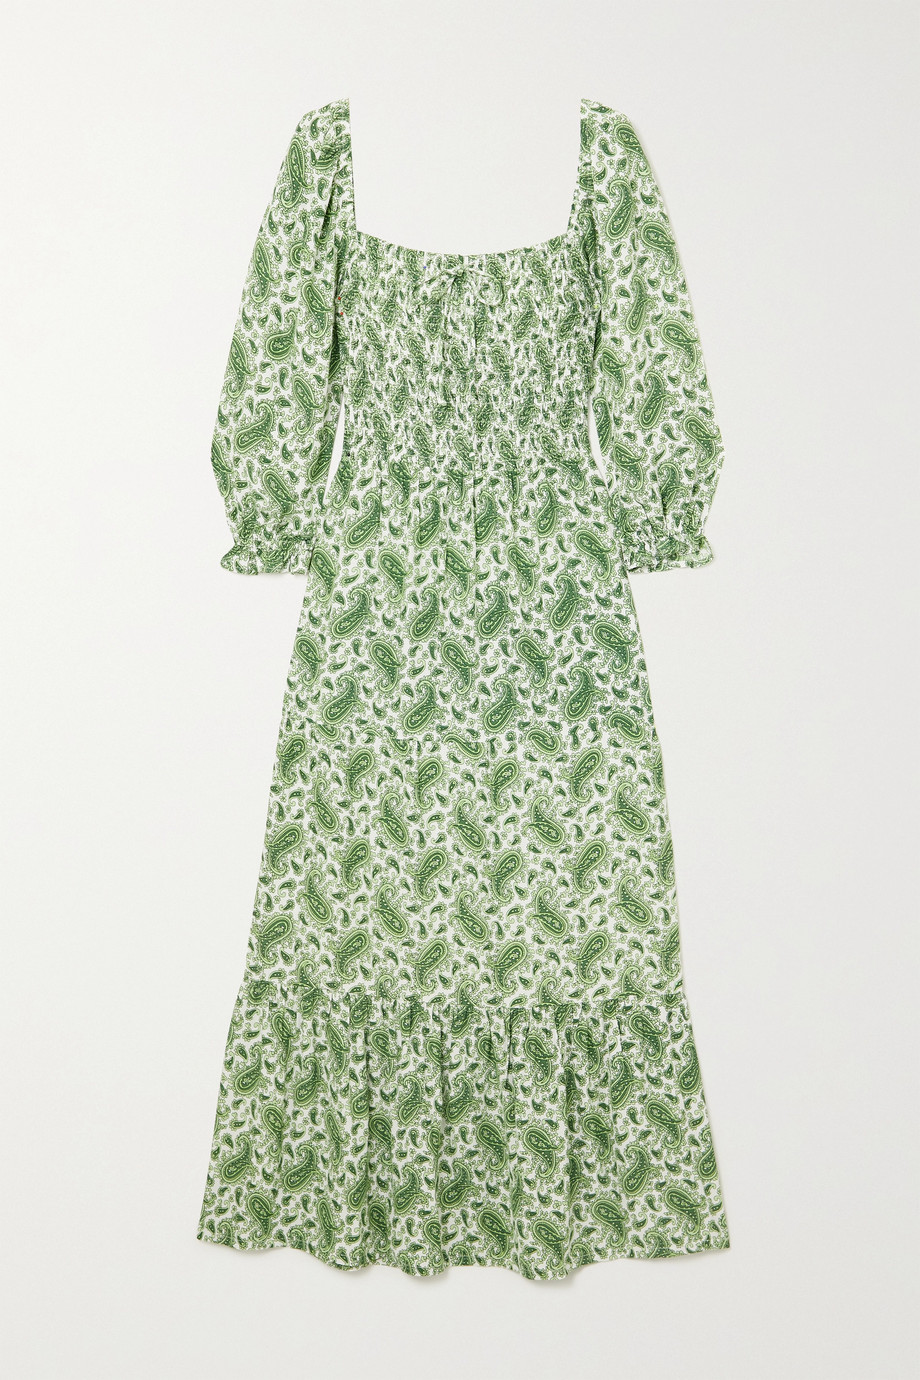 FAITHFULL THE BRAND + NET SUSTAIN Le Galet paisley-print crepe midi dress